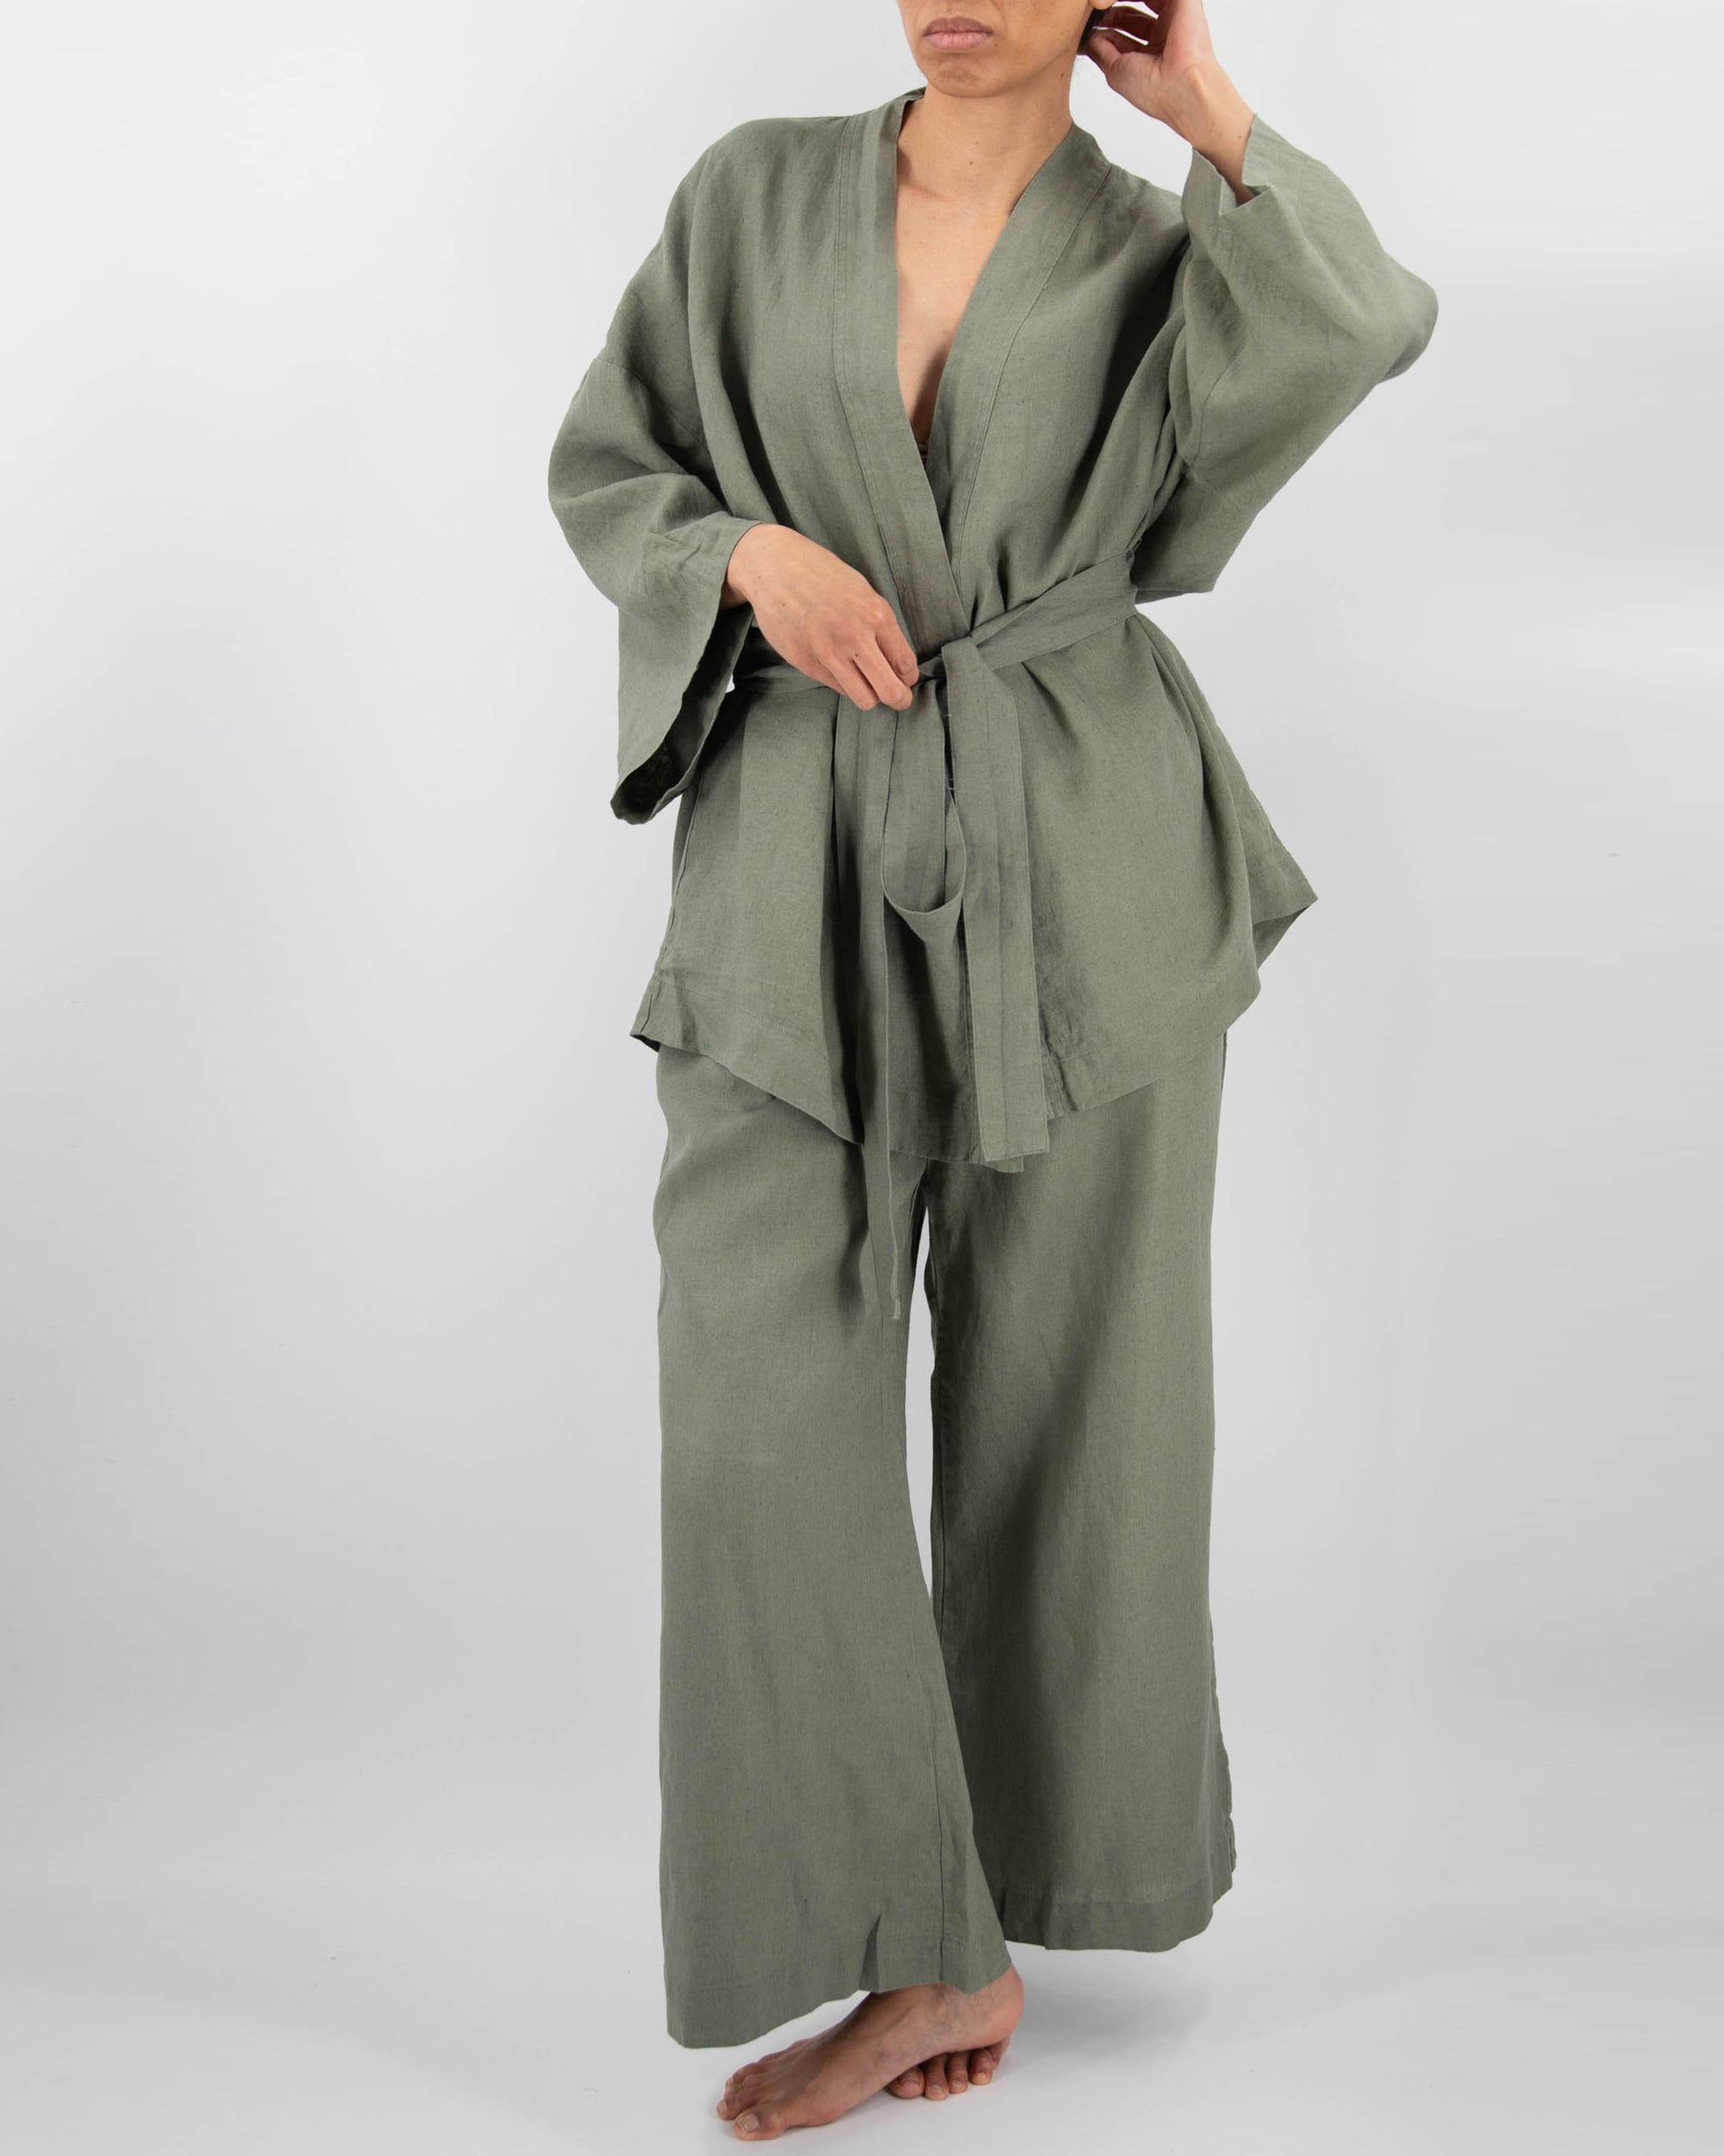 Kimono style loungwear set (top and pants) on model in charcoal black